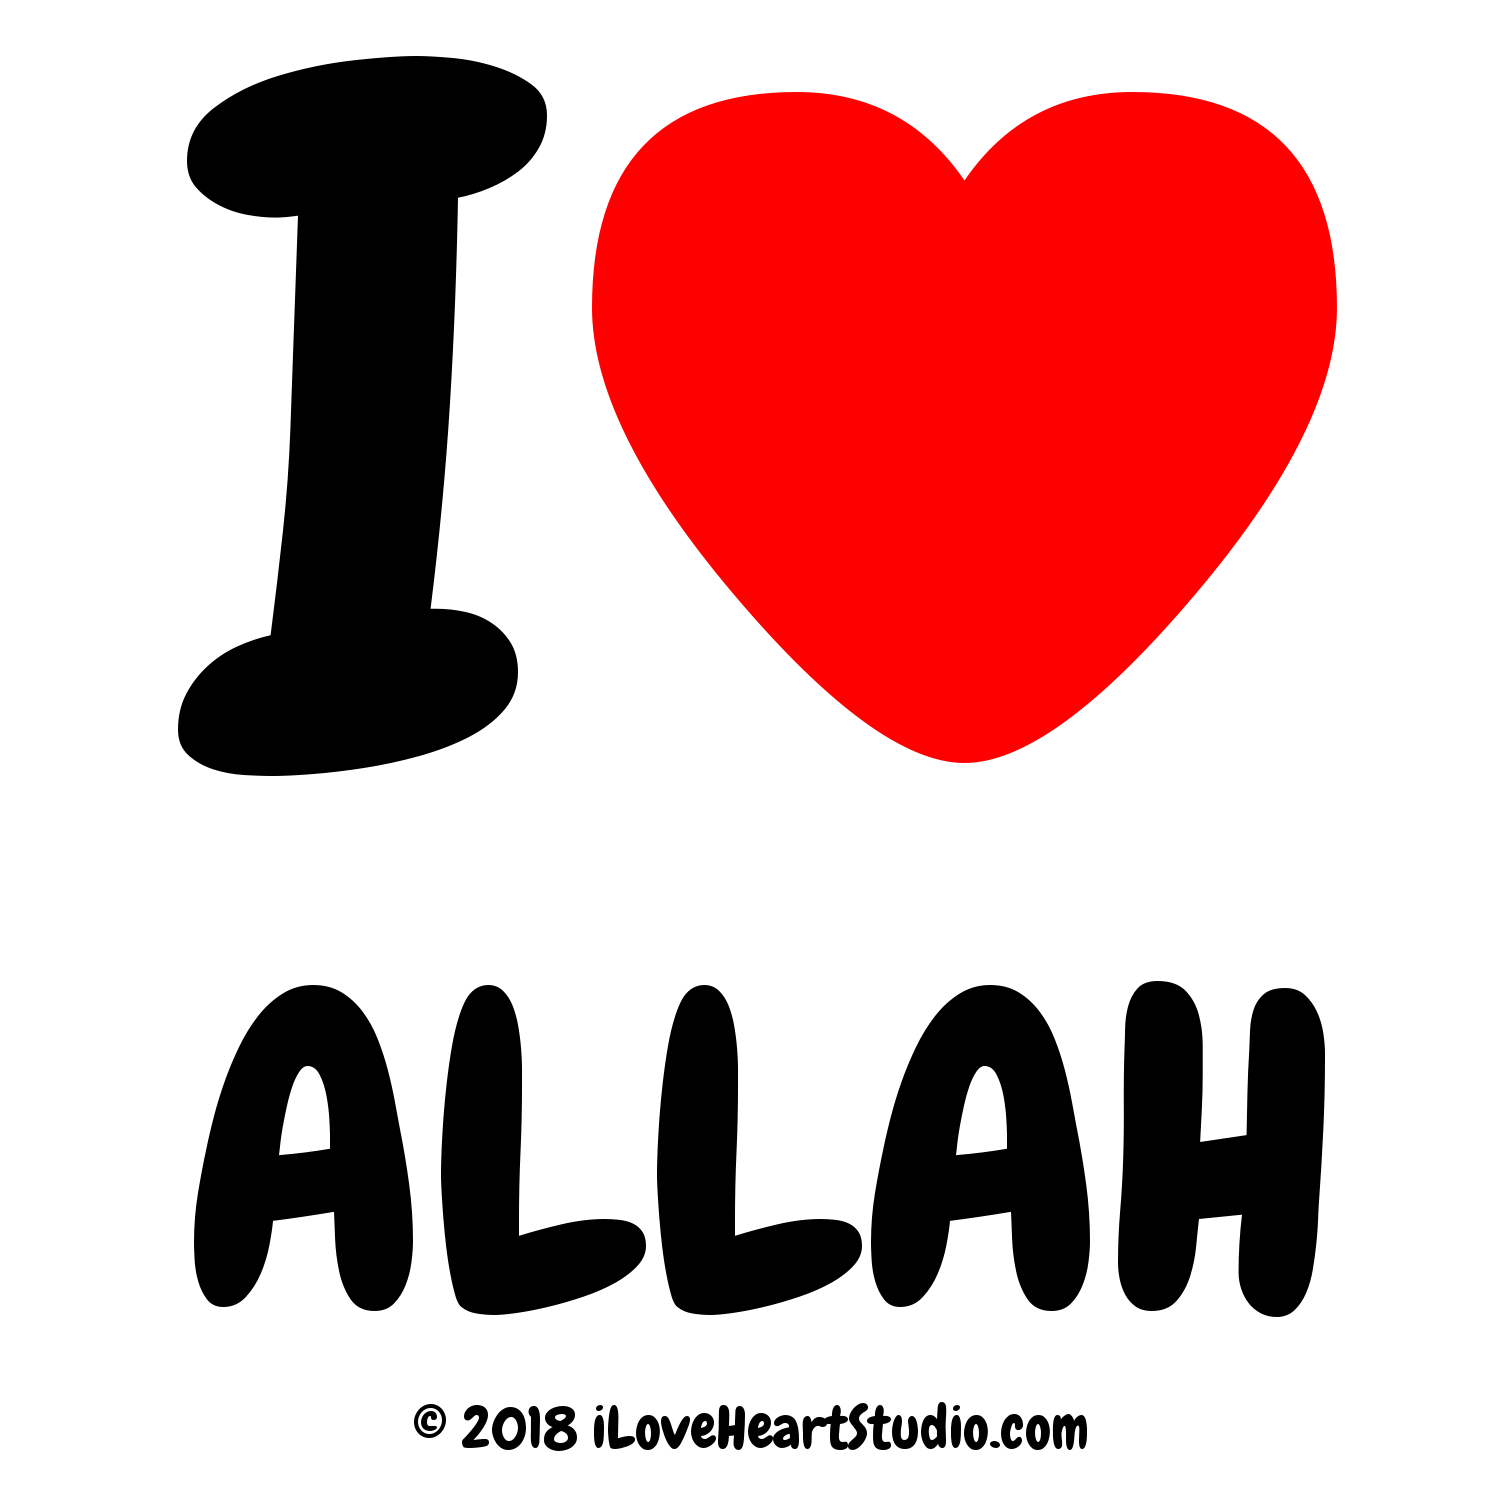 I Love Heart Allah Design On T Shirt Poster Mug And Many Other